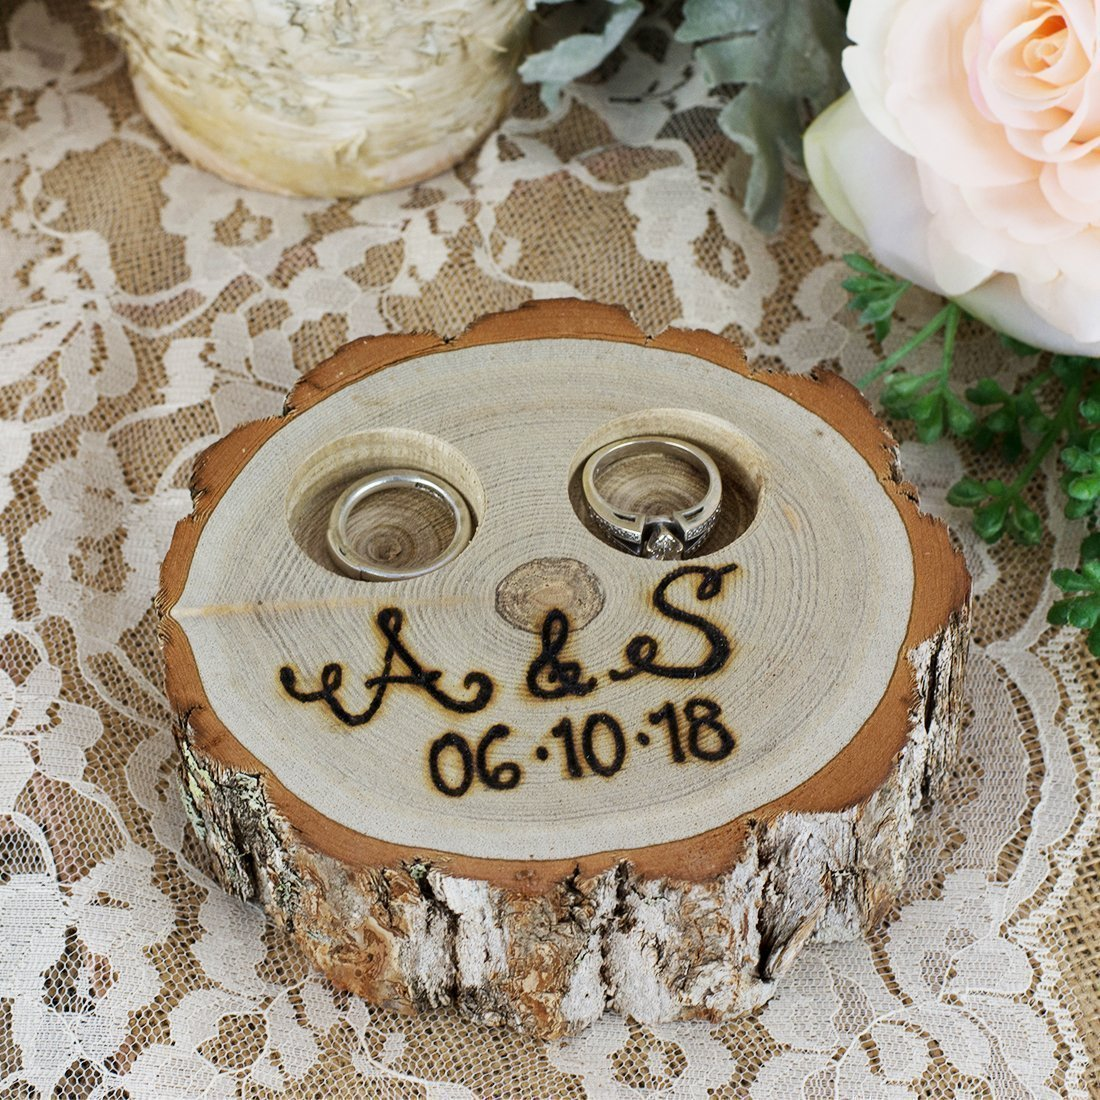 Personalized Rustic Tree Stump Ring Bearer Pillow Box - Initials and Date